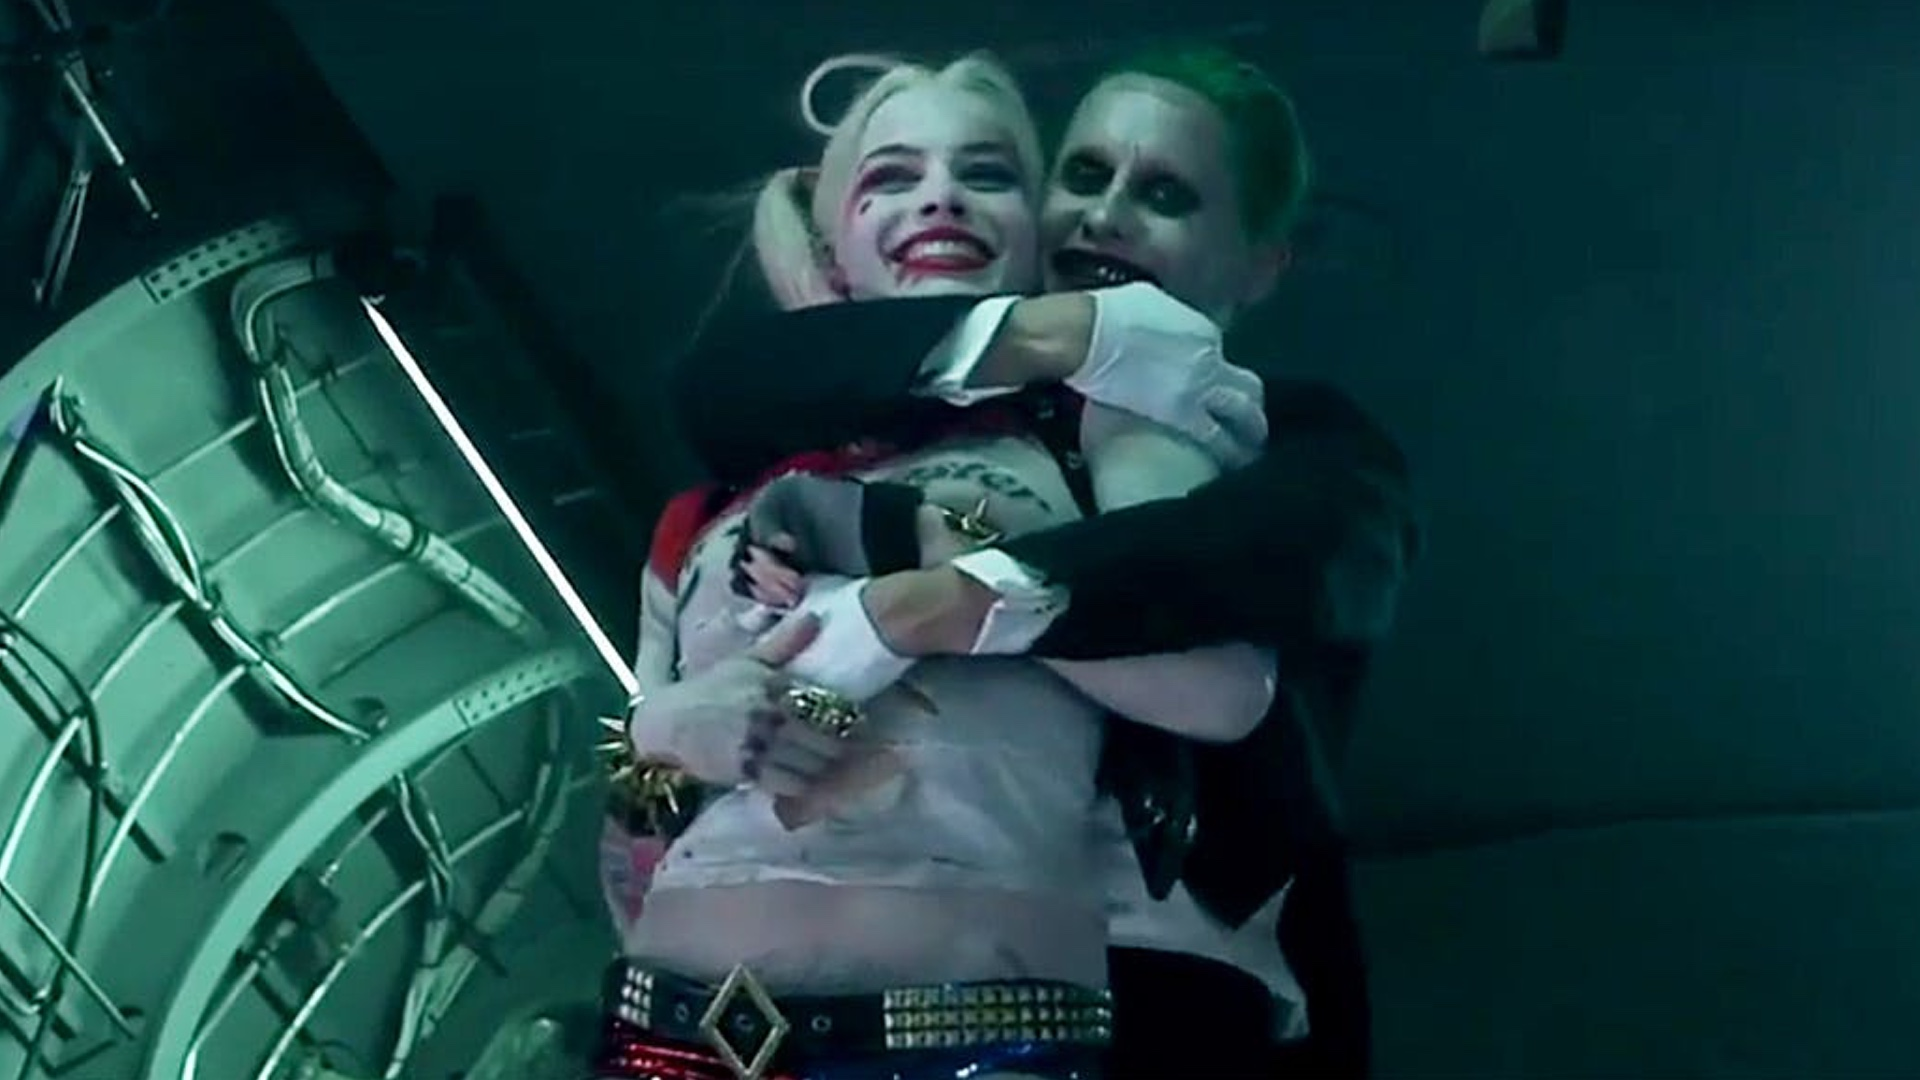 jared-letos-joker-movies-scraped-and-harley-quinn-will-not-appear-in-james-gunns-the-suicide-squad-social.jpg